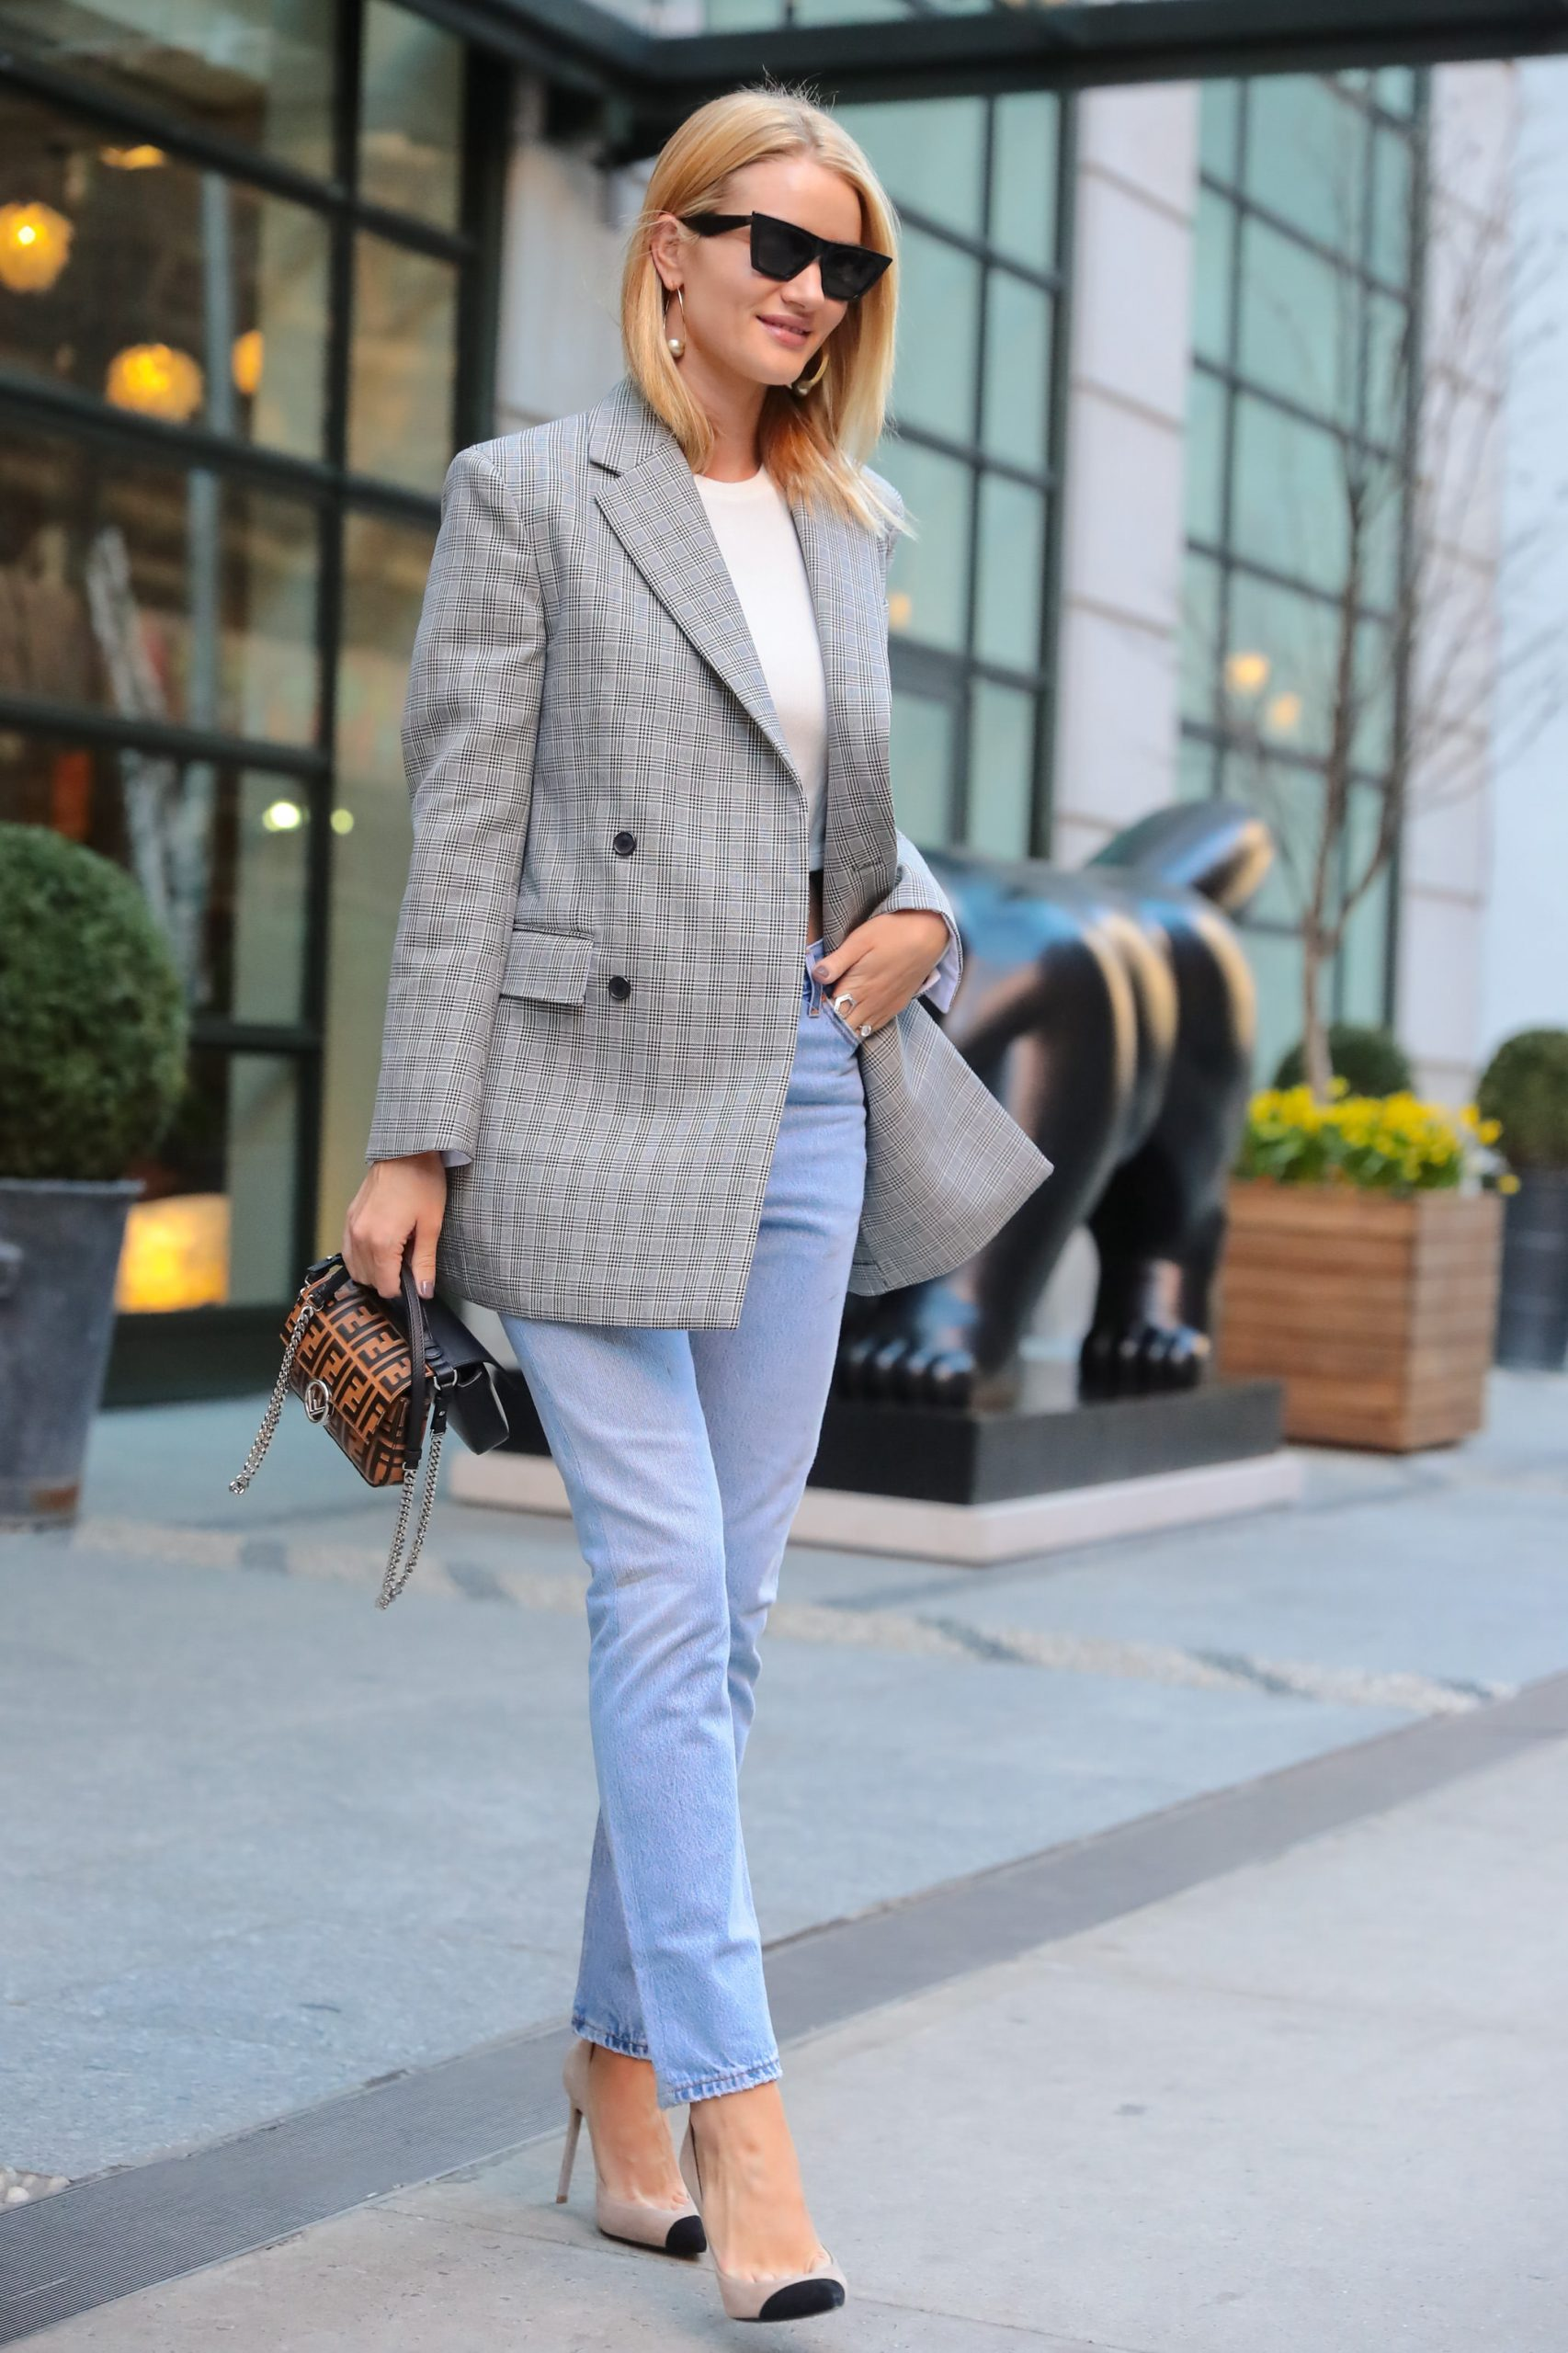 Rosie Huntington-Whiteley wears a check blazer over jeans